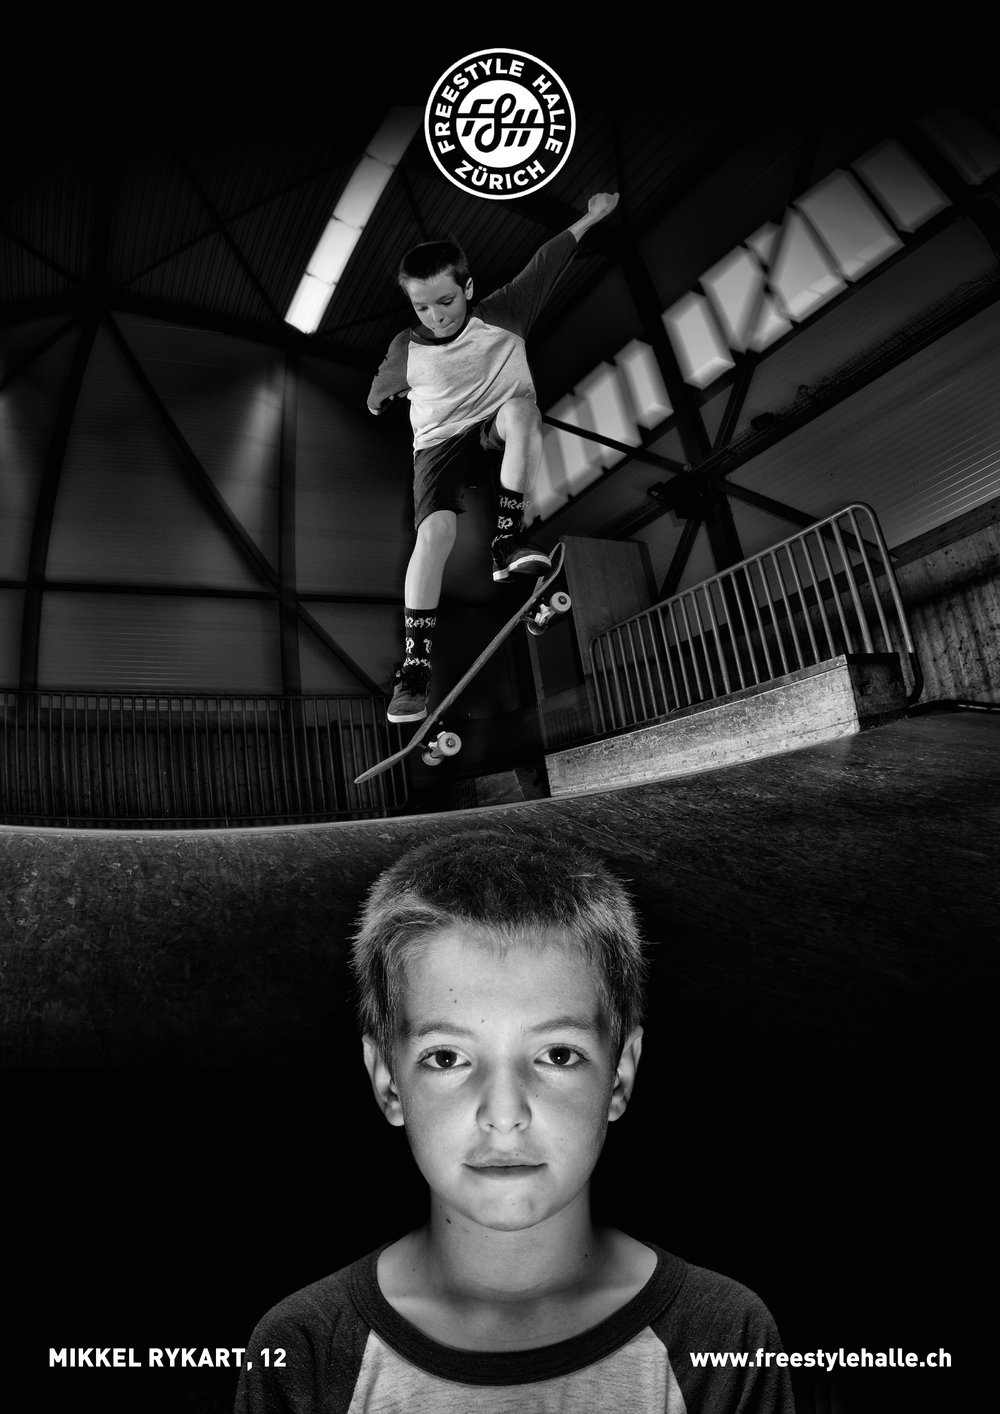 """LOCAL""  fotoseries by 📸@peterrauch  featuring the creatures of the freestylehalle biotope-  today: name mikkel rykart how old are you? wie alt bist du? 12 at what age did you start skating? in welchem alter bist du das erste mal geskatet? 9 where are you from? woher kommst du? swiss, denmark what do you get out of skating? was gibt dir skaten? lots of nice people and new friends vil netti lüt und neui kollege are you member of a skate crew? bist du in einer crew? jes, shredders! favorit trick? lieblings trick? shove it and fakie bigspins   #freestylehalle #fshzh #local #zurich #skateboarding #biodiverisityofskateboarding"